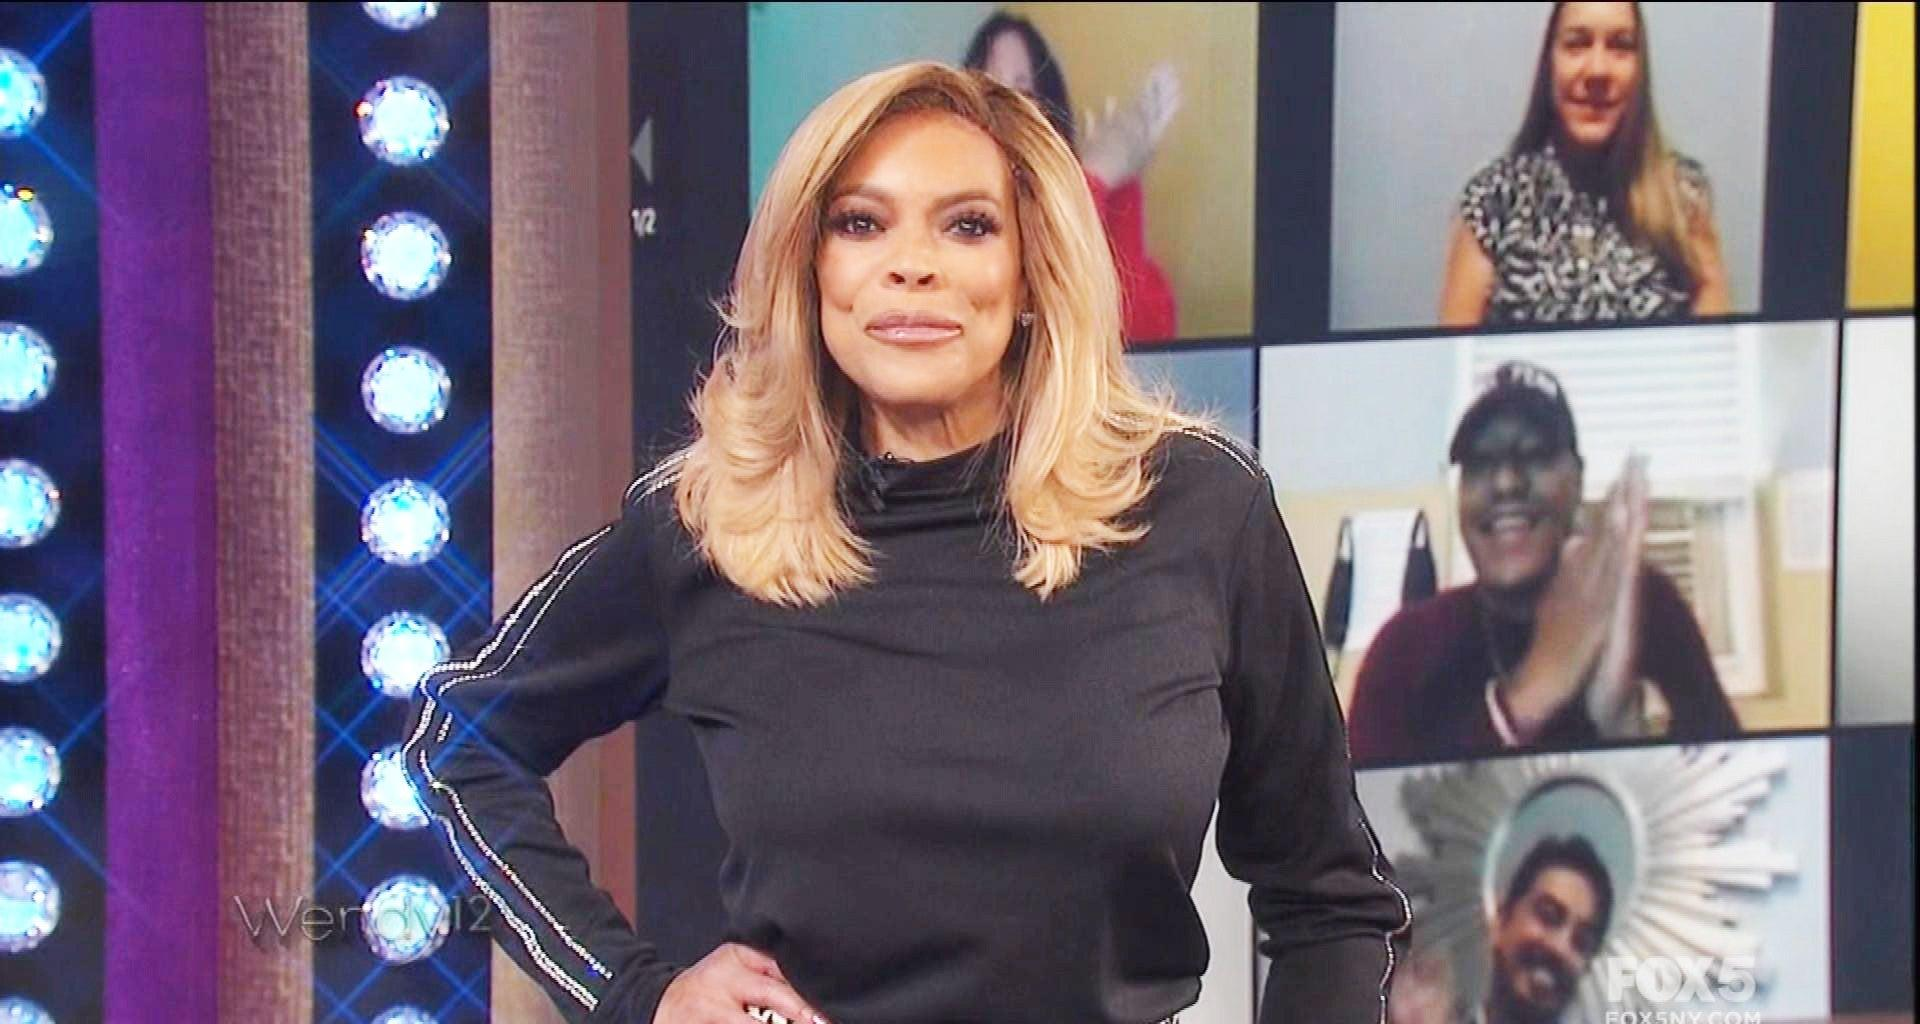 Wendy Williams Responds To Reports About Her Erratic Behavior -- Here's Her Explanation